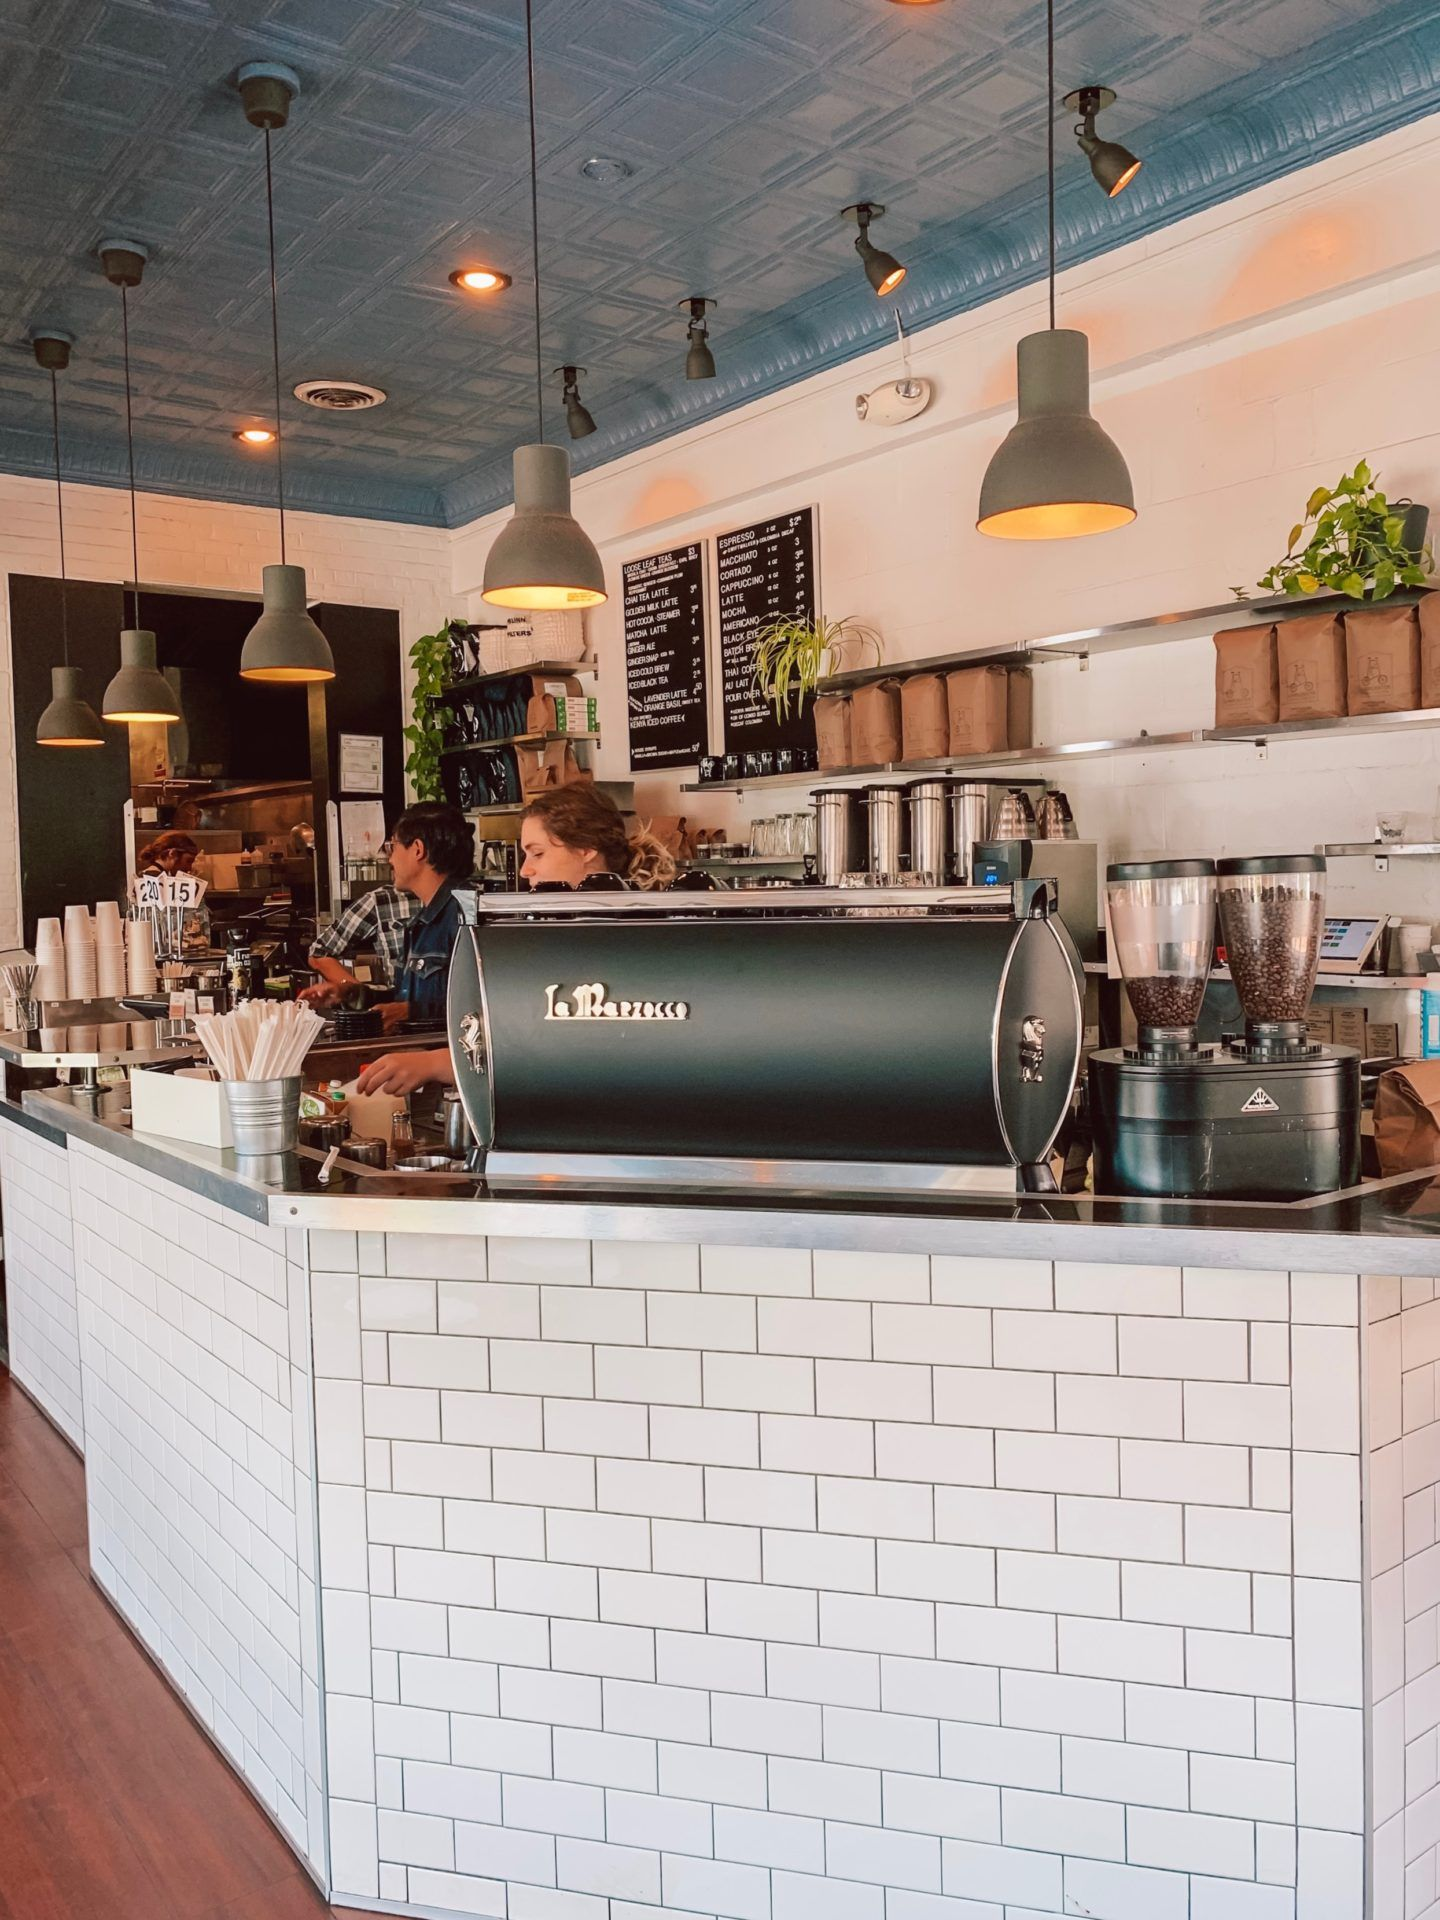 20 Cafes You Need To Visit In Richmond Virginia She Saw Style Coffee Shop Decor Cool Cafe Modern Cafe